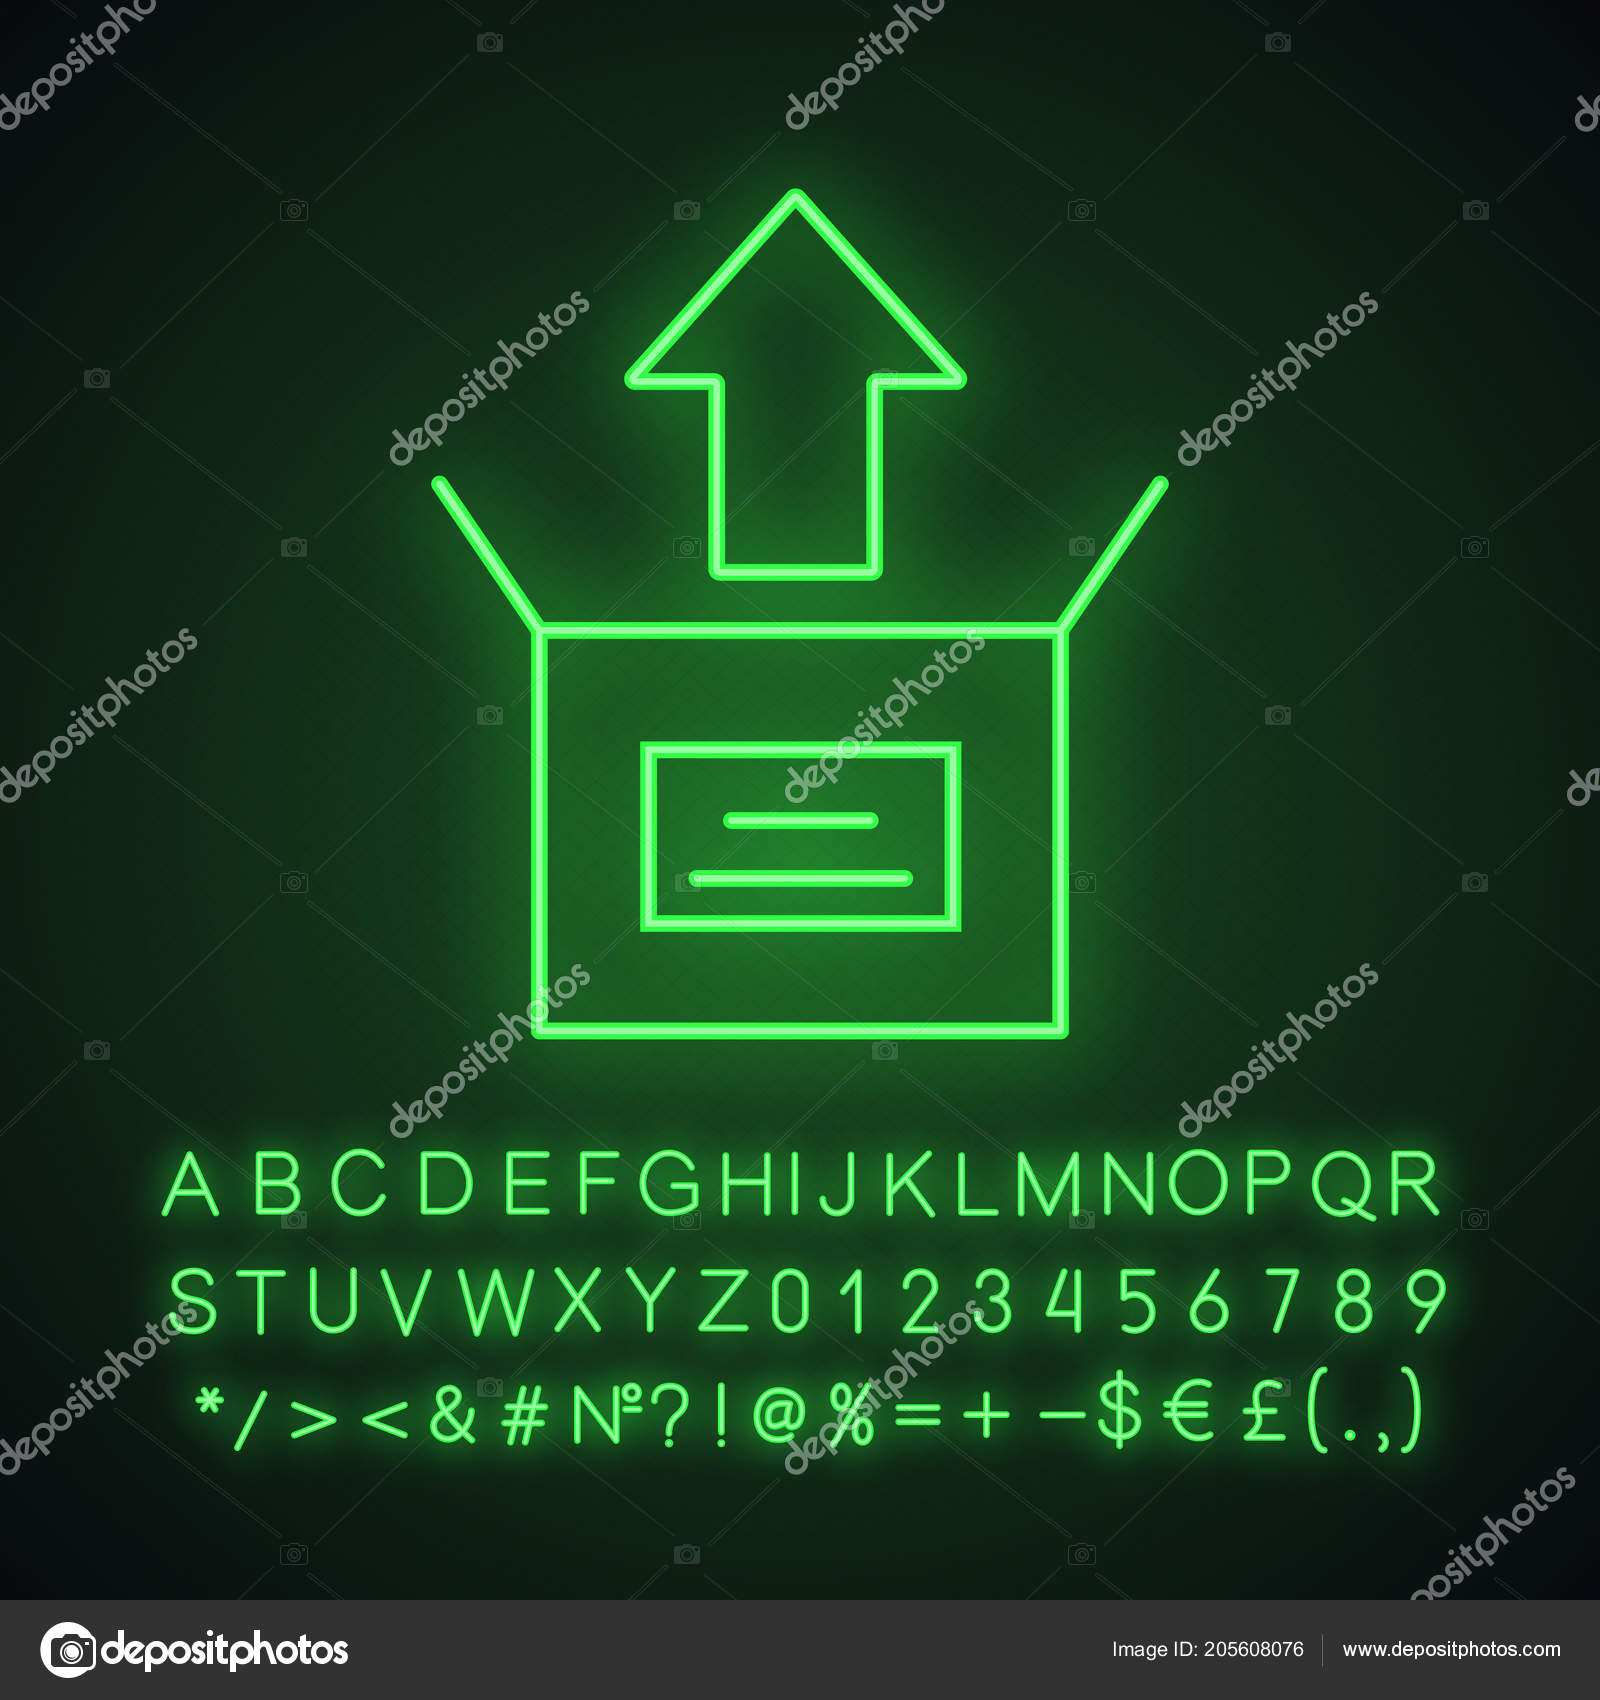 hight resolution of unboxing neon light icon box unpacking glowing sign alphabet numbers stock vector